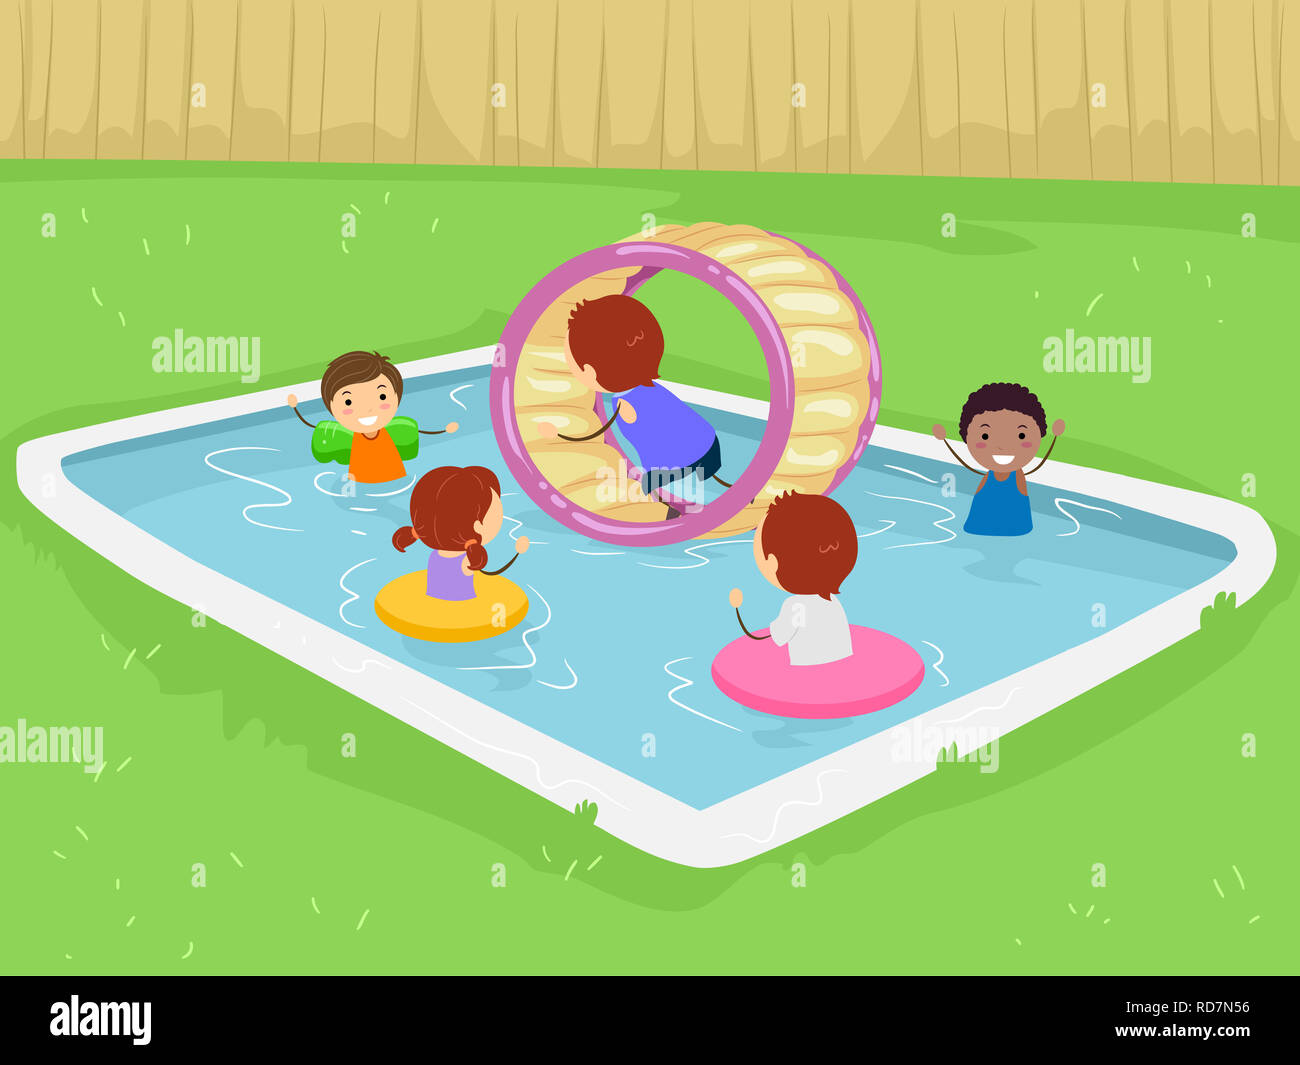 Illustration of Stickman Kid In the Pool in the Backyard with Inflatable Wheel and Flotation Devices Stock Photo